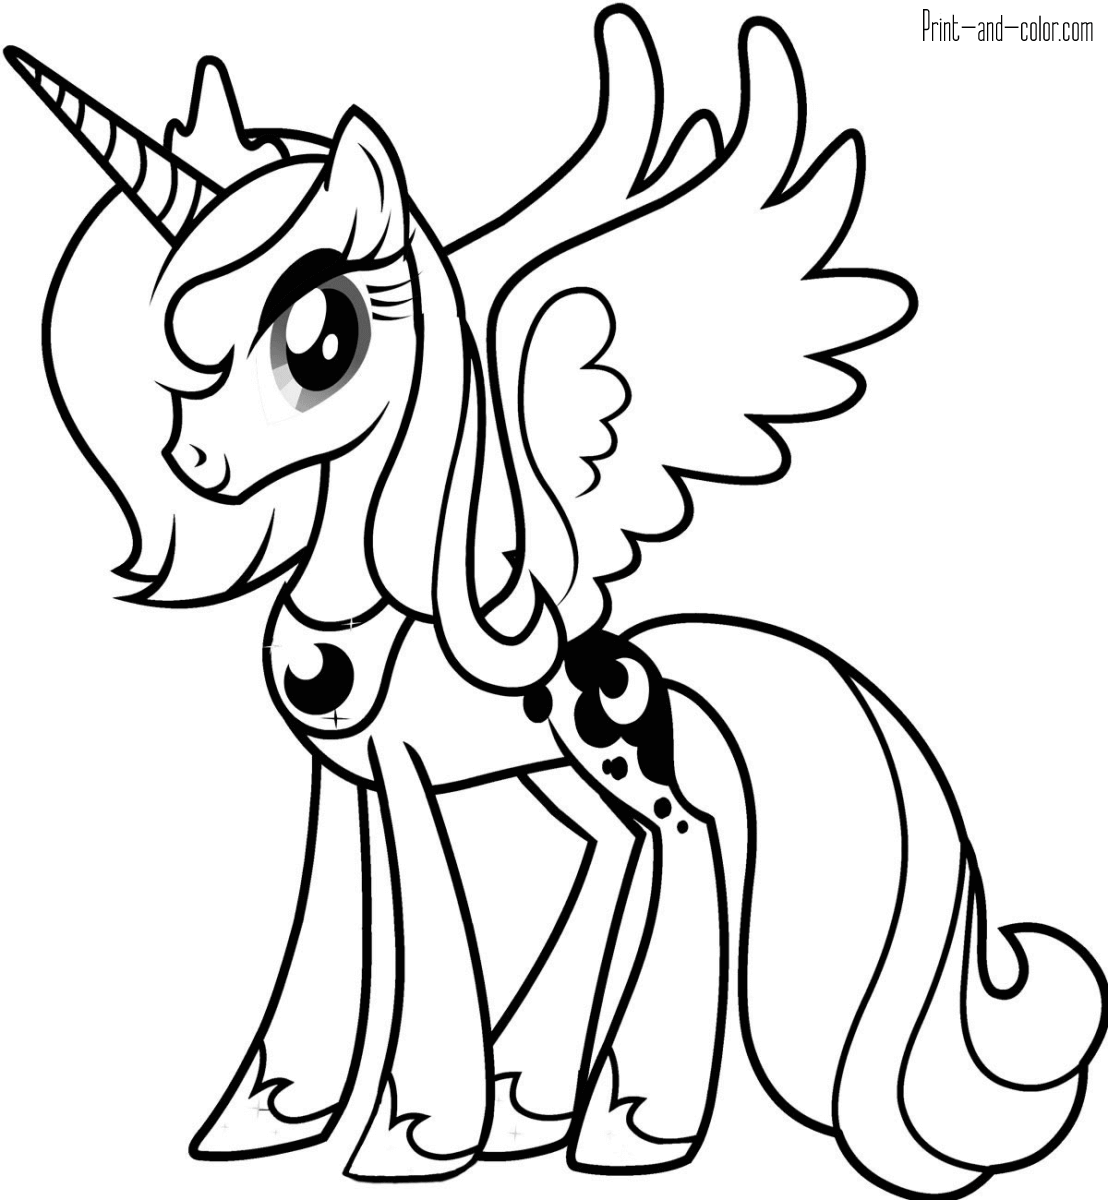 little pony to color my little pony coloring pages print and colorcom pony to little color